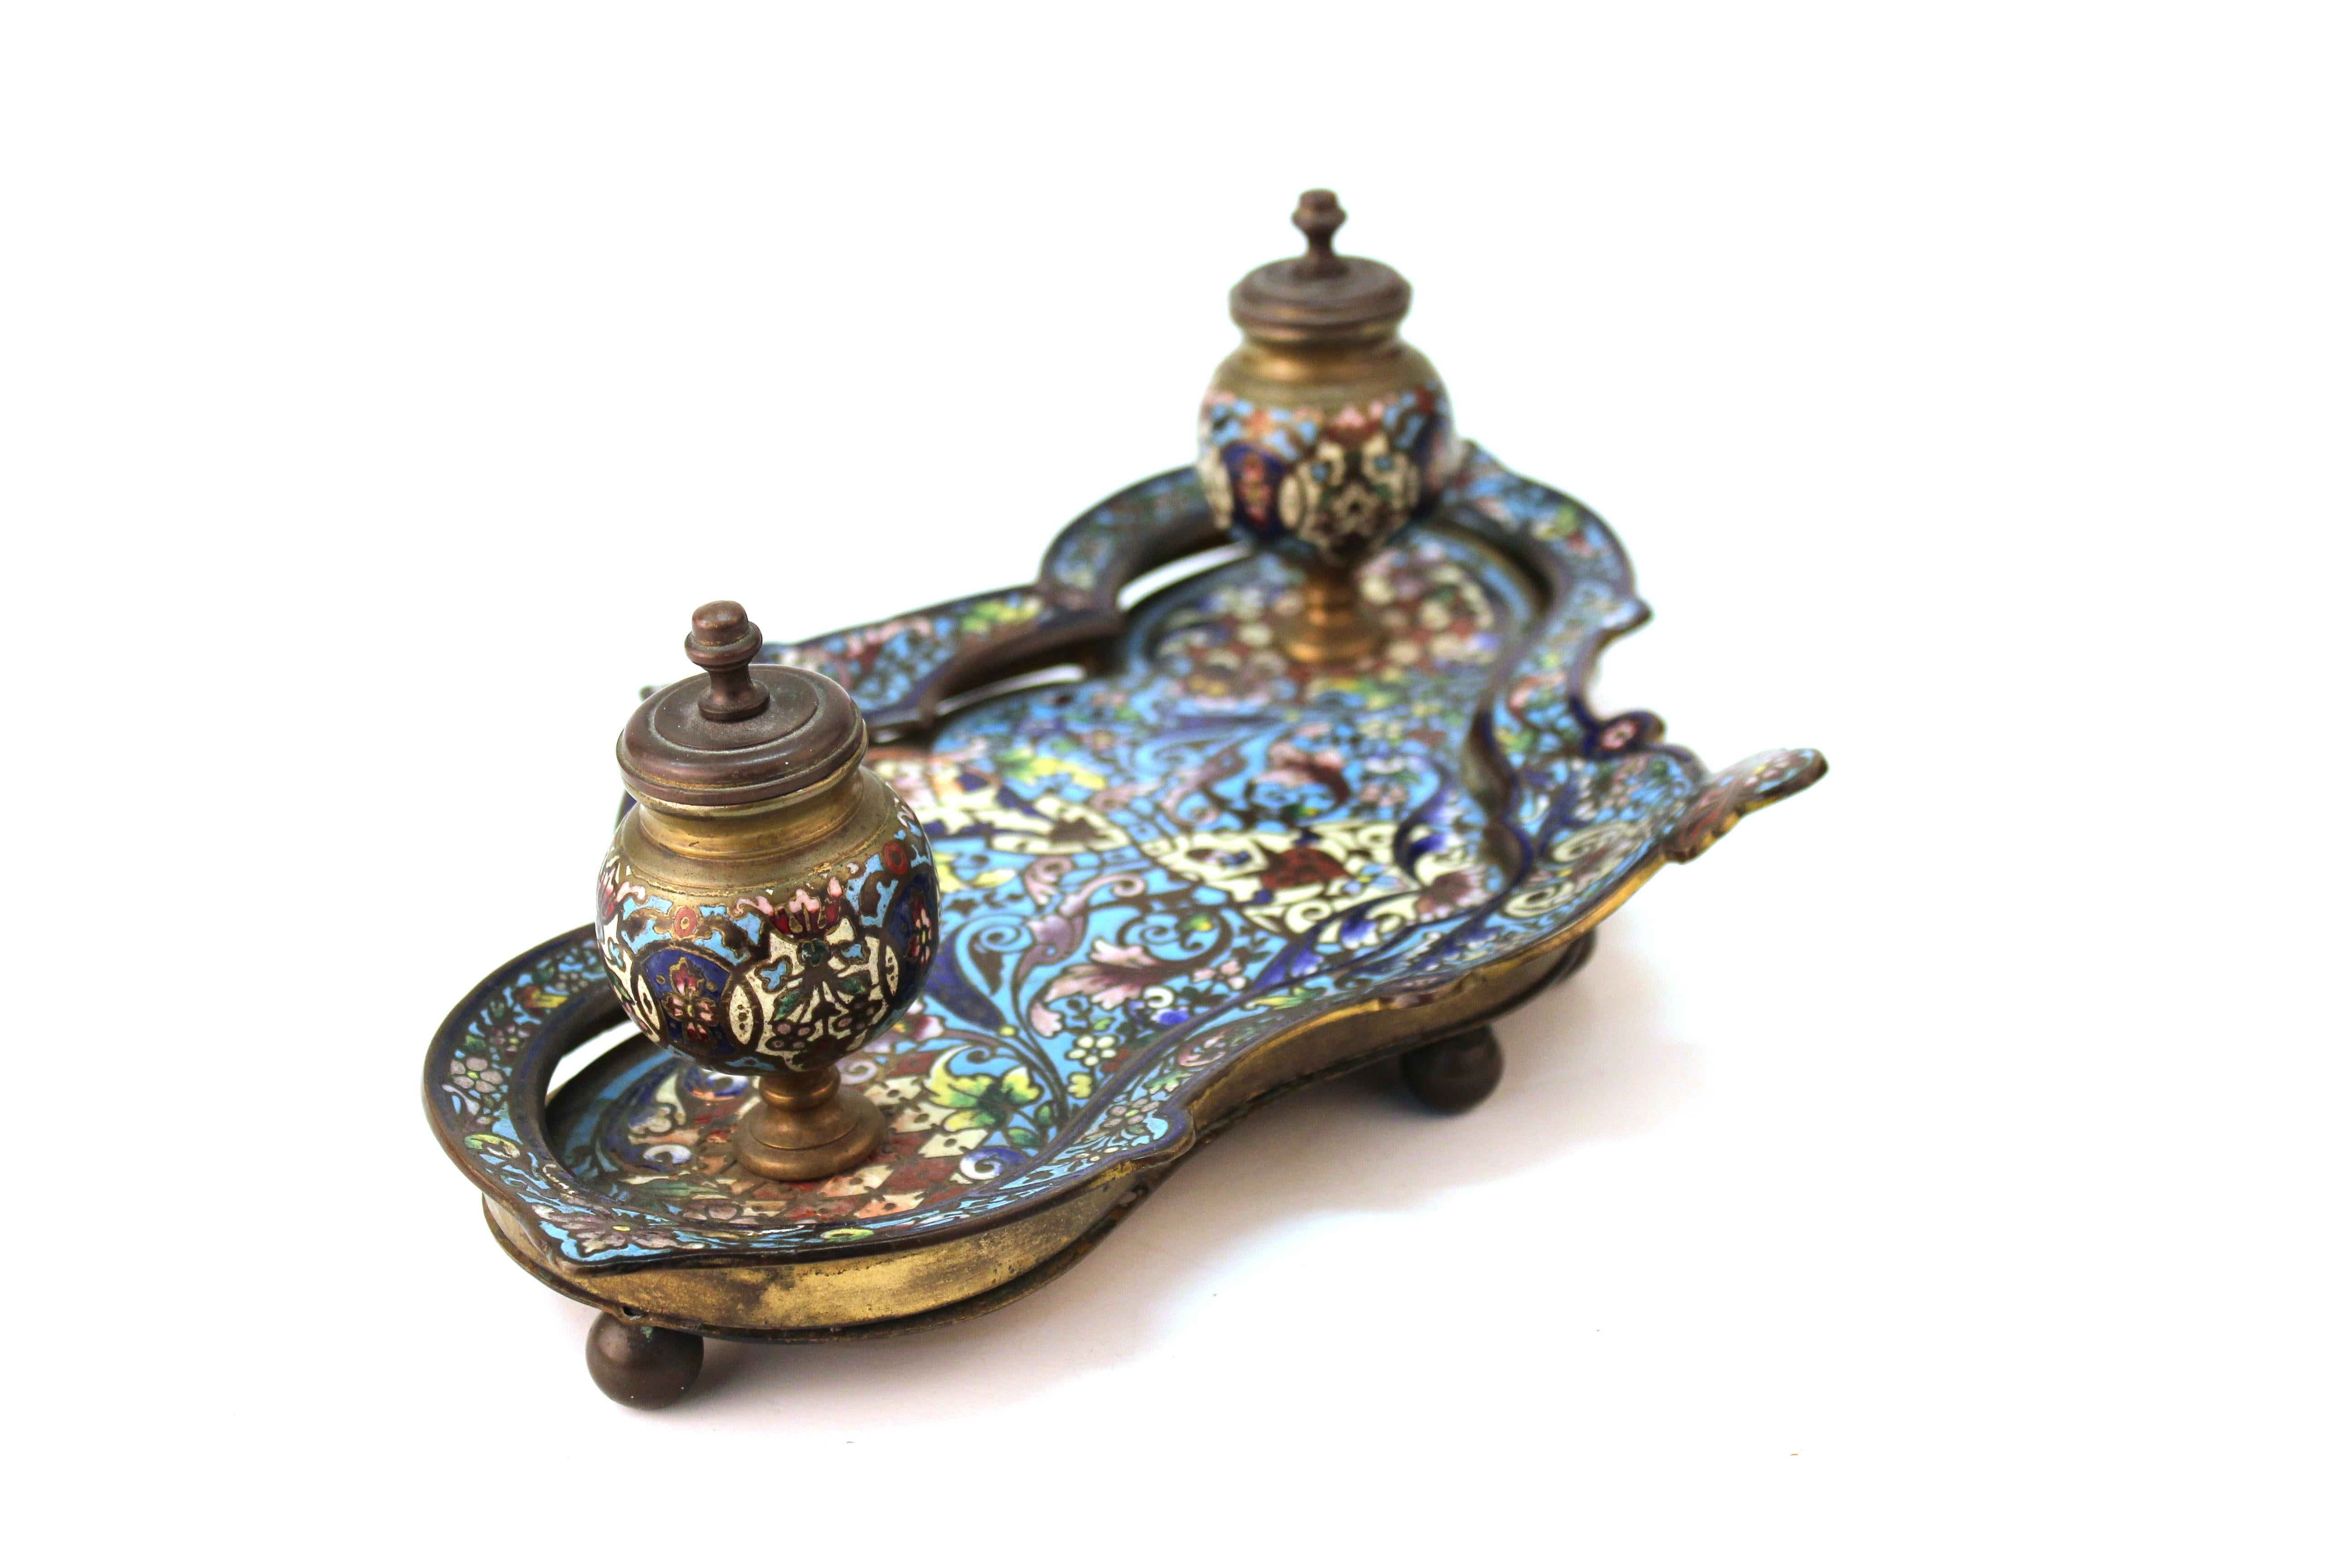 Decorative Arts Original French Bronze And Champleve Enamel Inkwell Encrier By Ferdinand Barbedienne